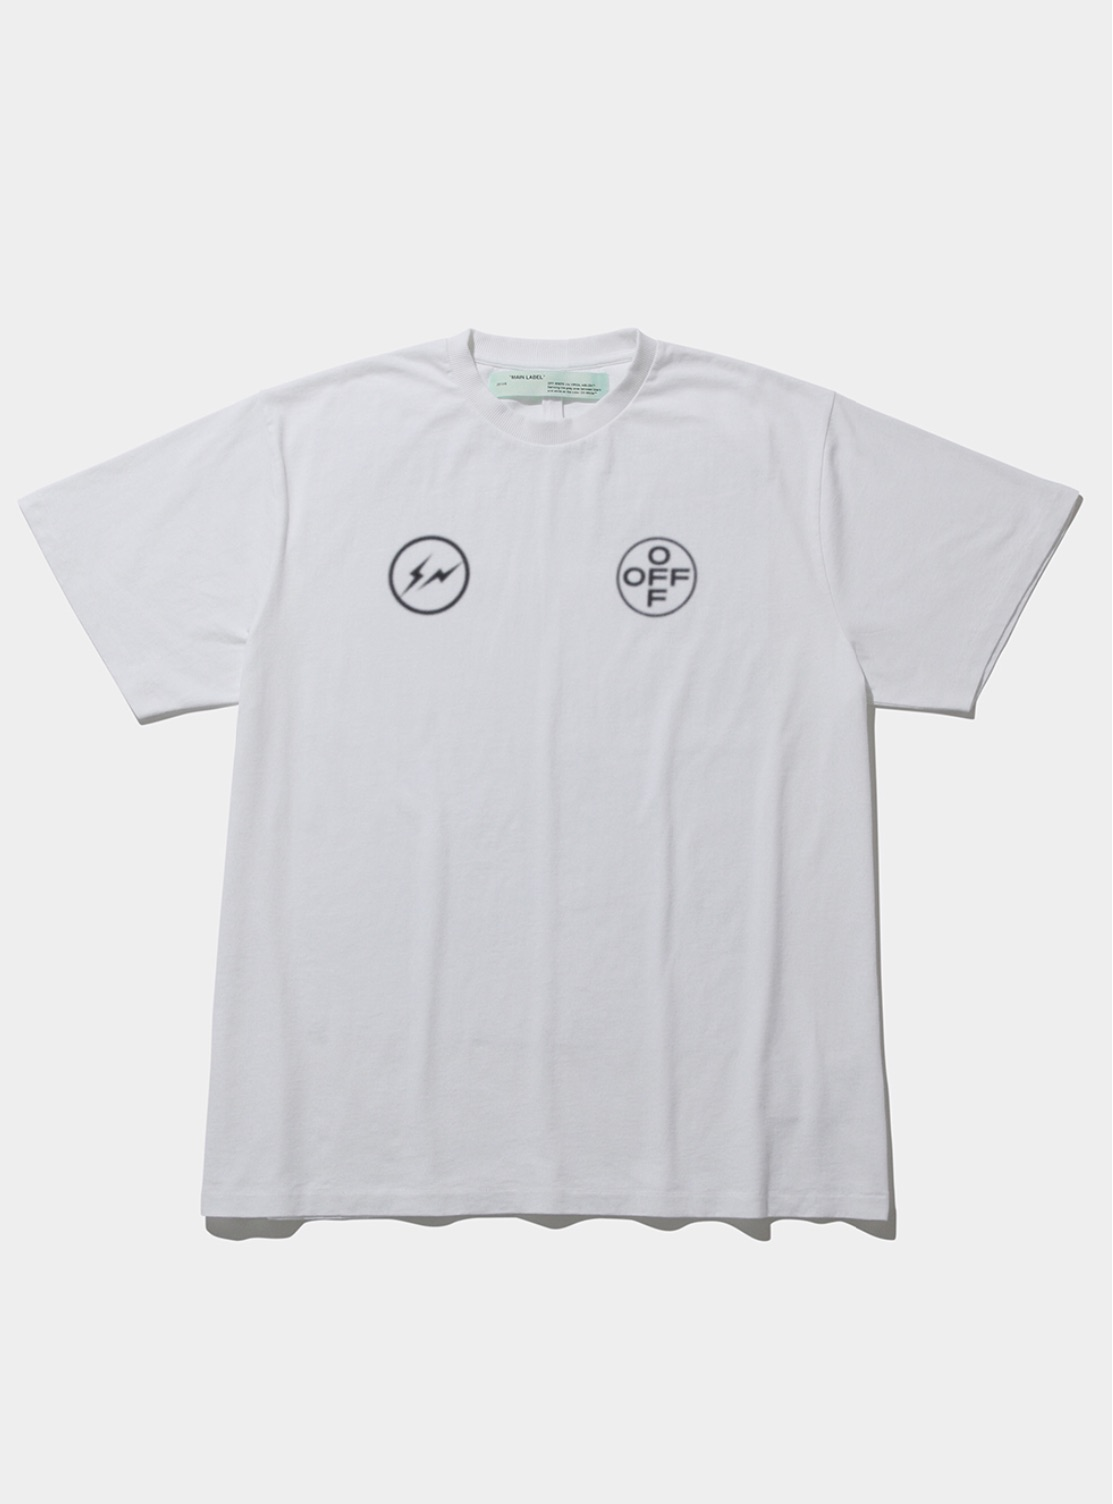 OFF-WHITE c/o VIRGIL ABLOH™×fragment designのTシャツが抽選受付中!